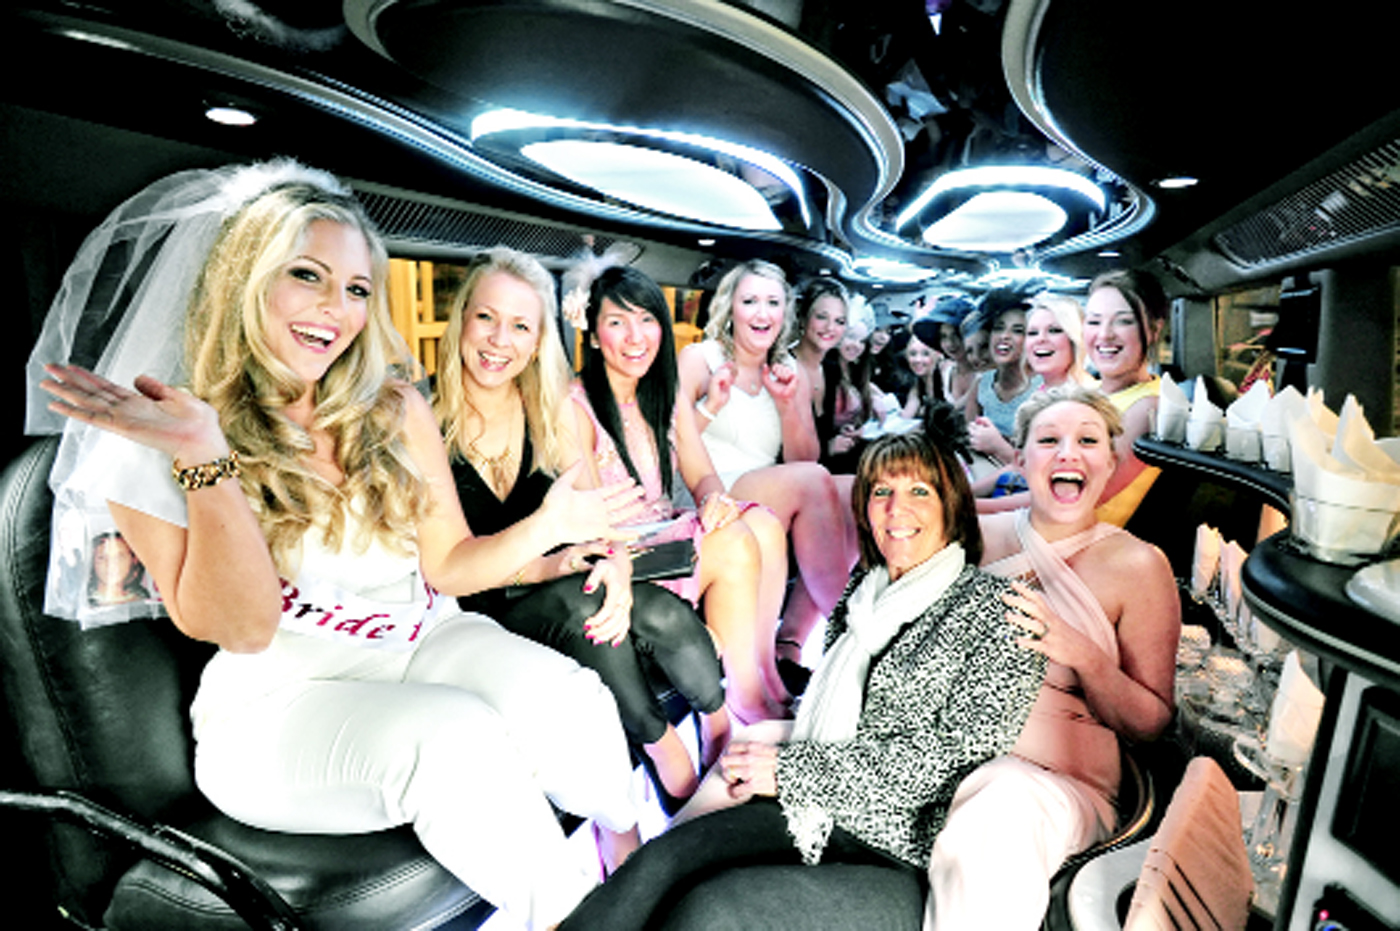 Darwen bride-to-be treated to surprise hen party at Aintree